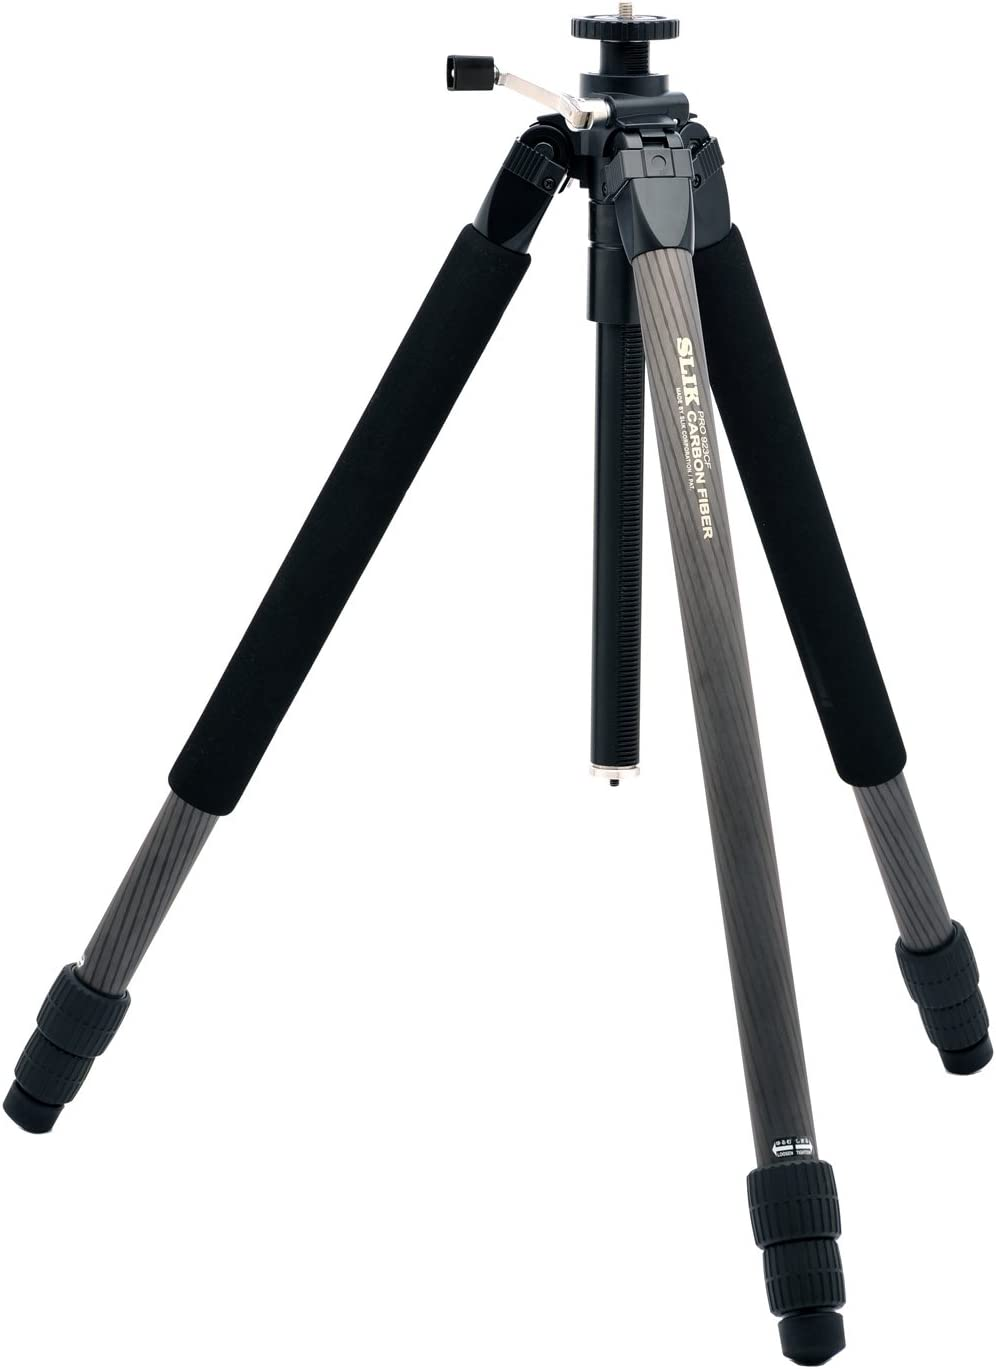 SLIK Pro 923 CF 3-Section Carbon Fiber Tripod, for Mirrorless/DSLR Sony Nikon Canon Fuji Cameras and More - Black (615-915)